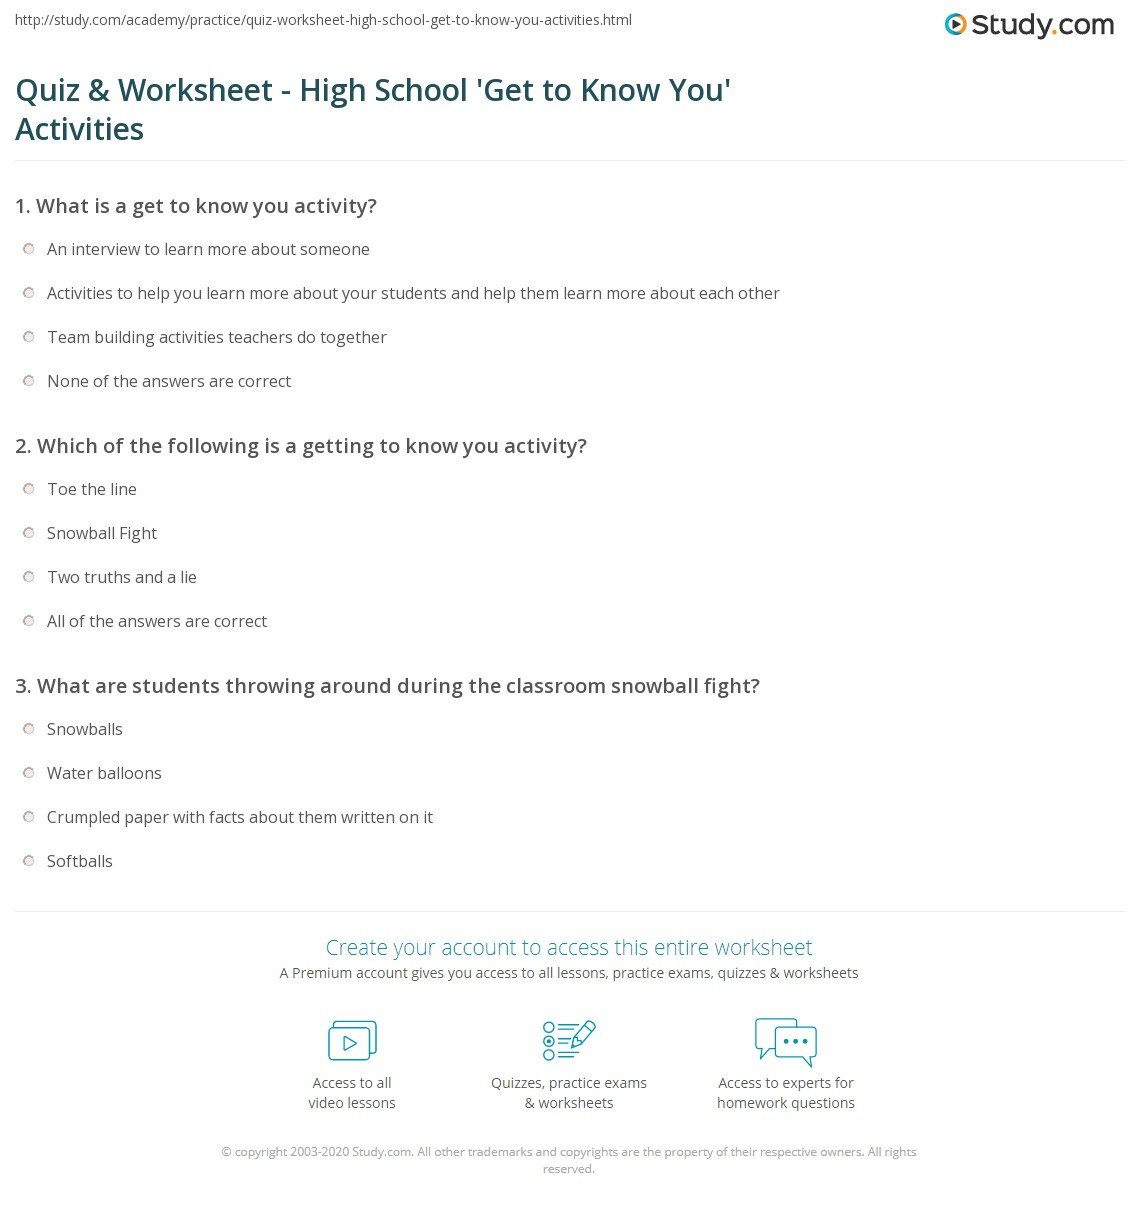 quiz worksheet high school 39 get to know you 39 activities. Black Bedroom Furniture Sets. Home Design Ideas